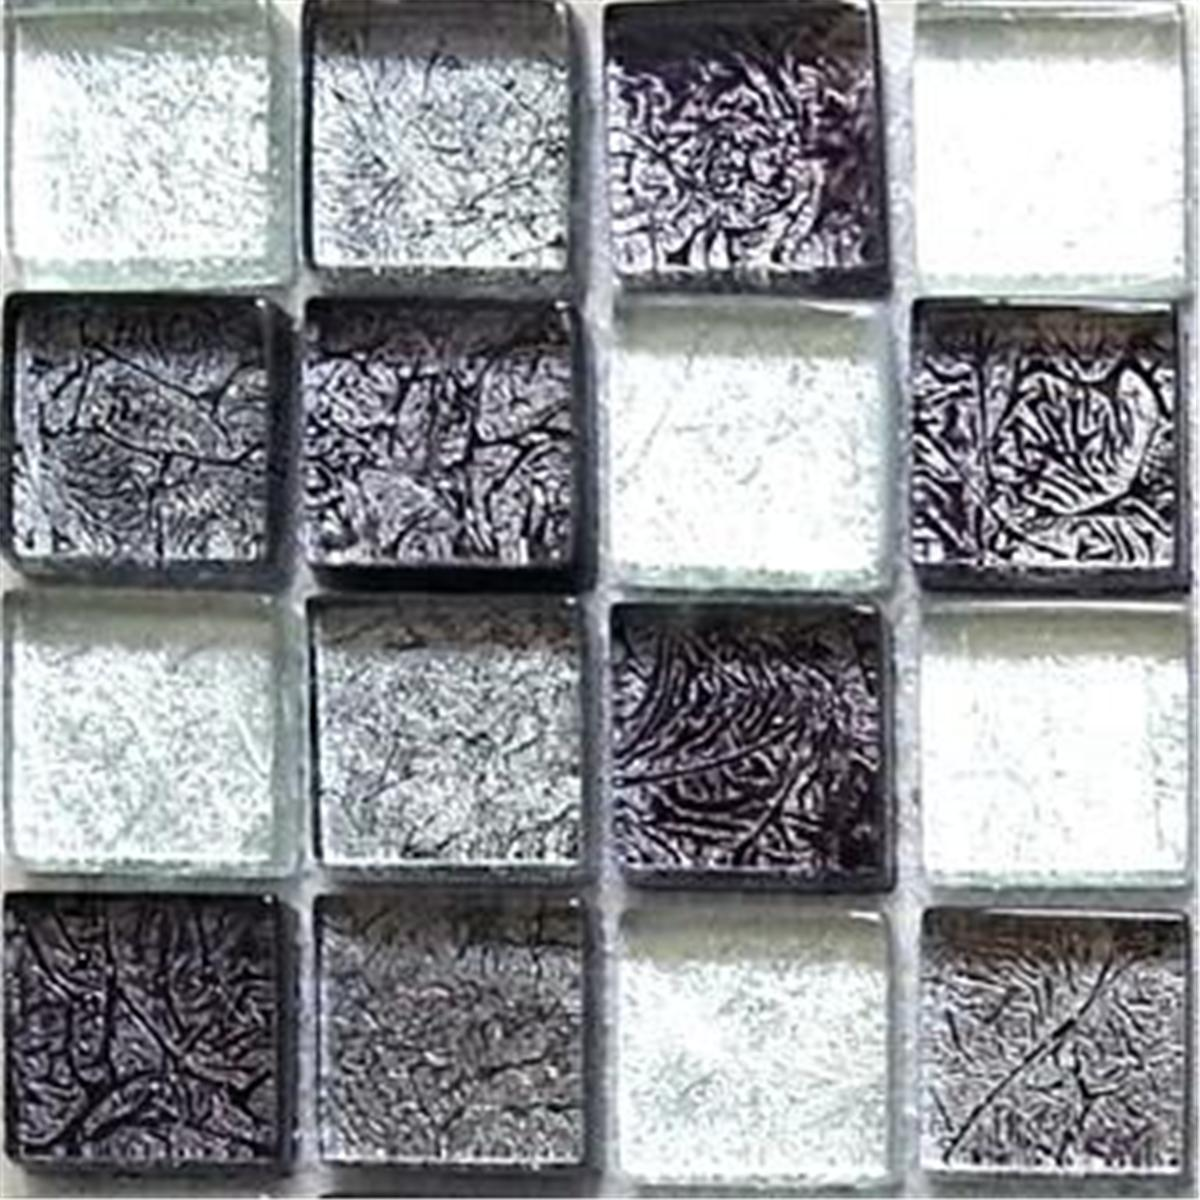 Silver Kitchen Wall Tiles: Mosaic Wall Tiles Glass Black And Silver Mix Bathroom And